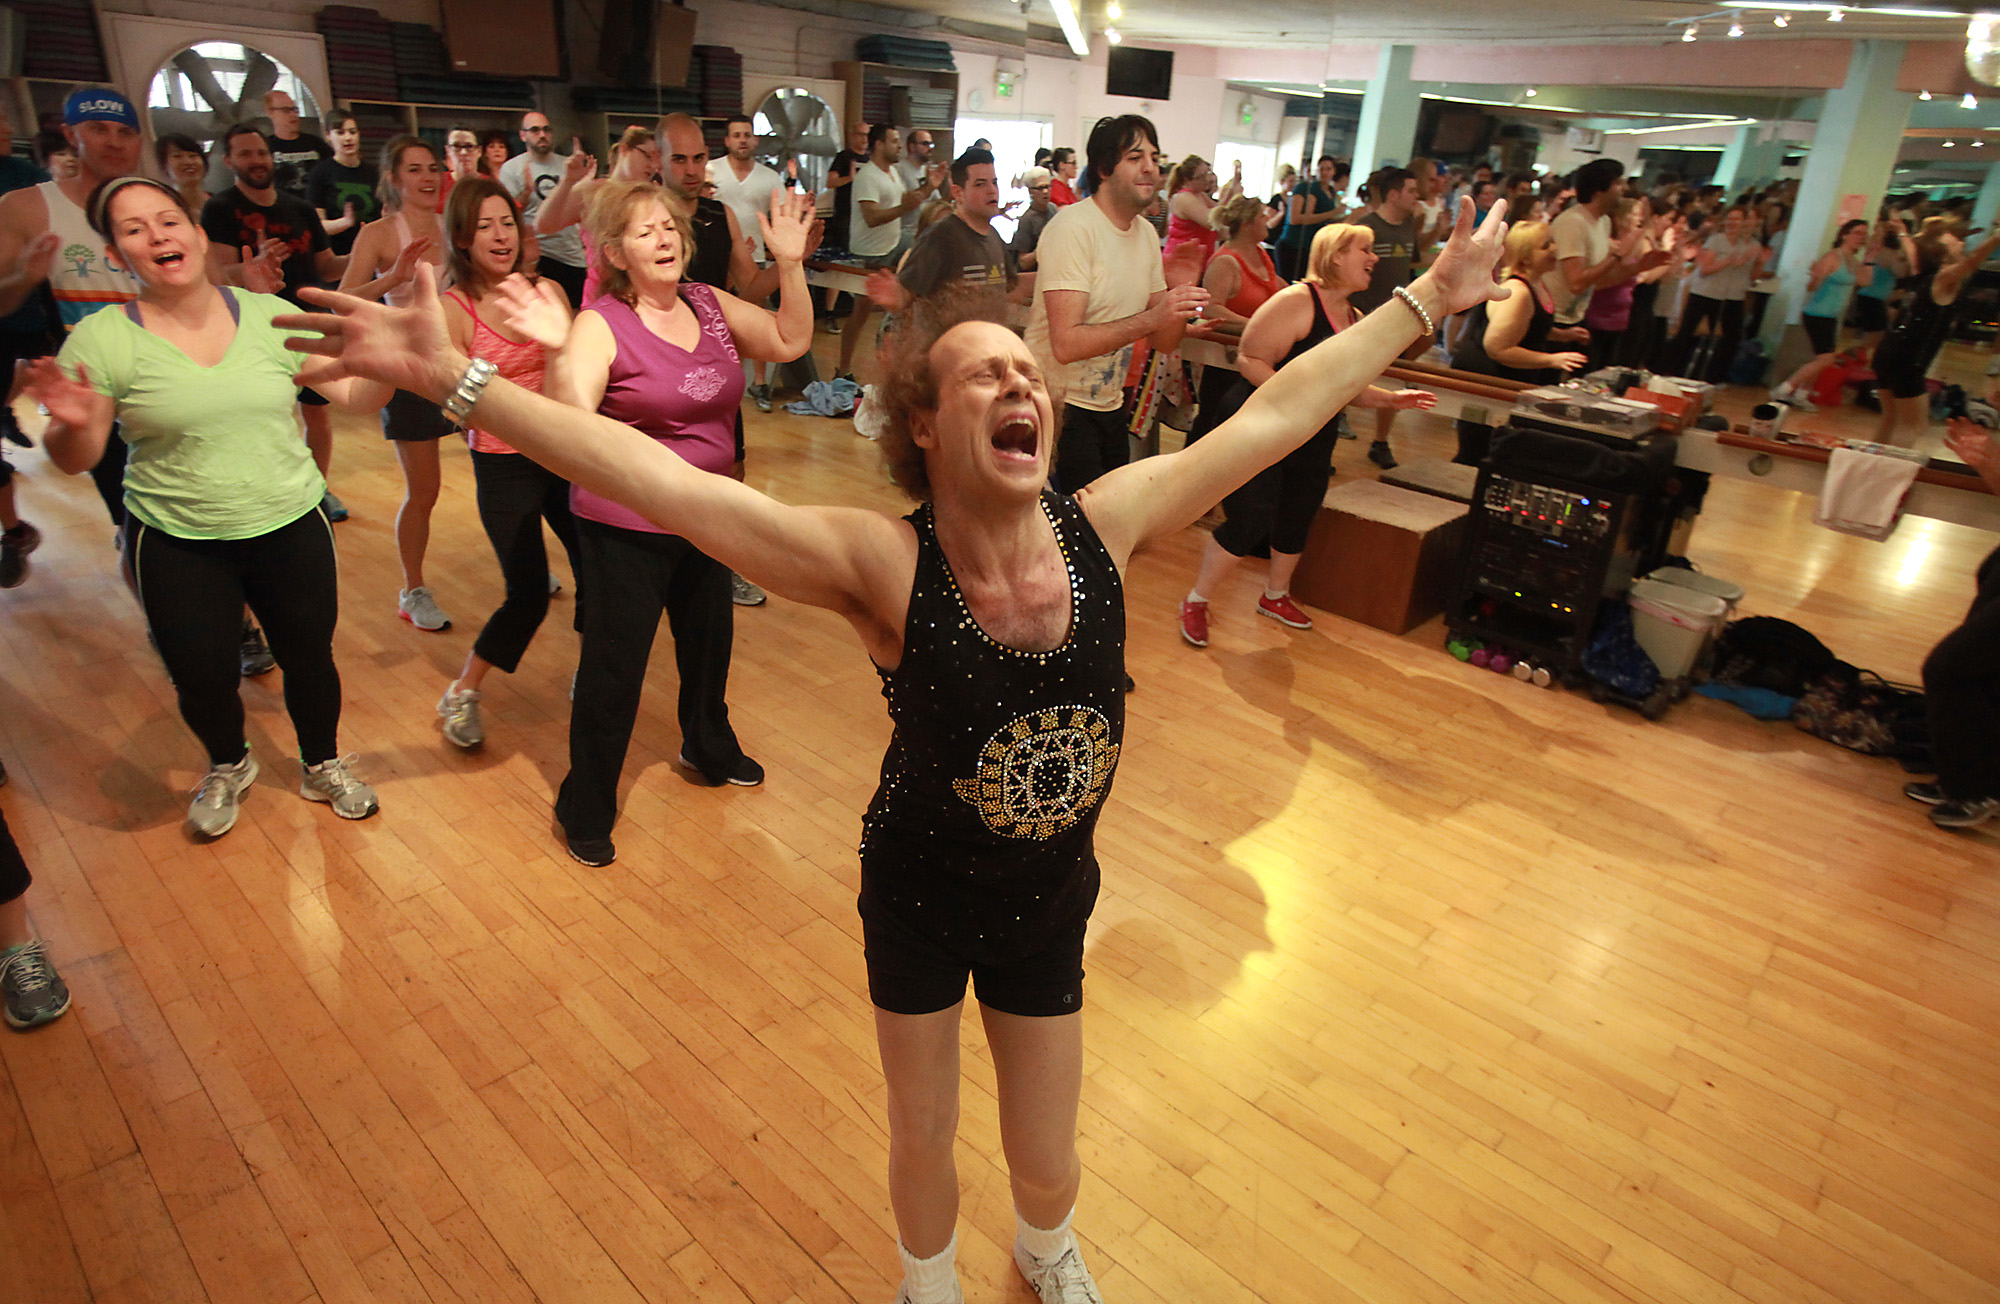 Fitness guru Richard Simmons sings alone with one the the 60s classic tunes playing during one of h